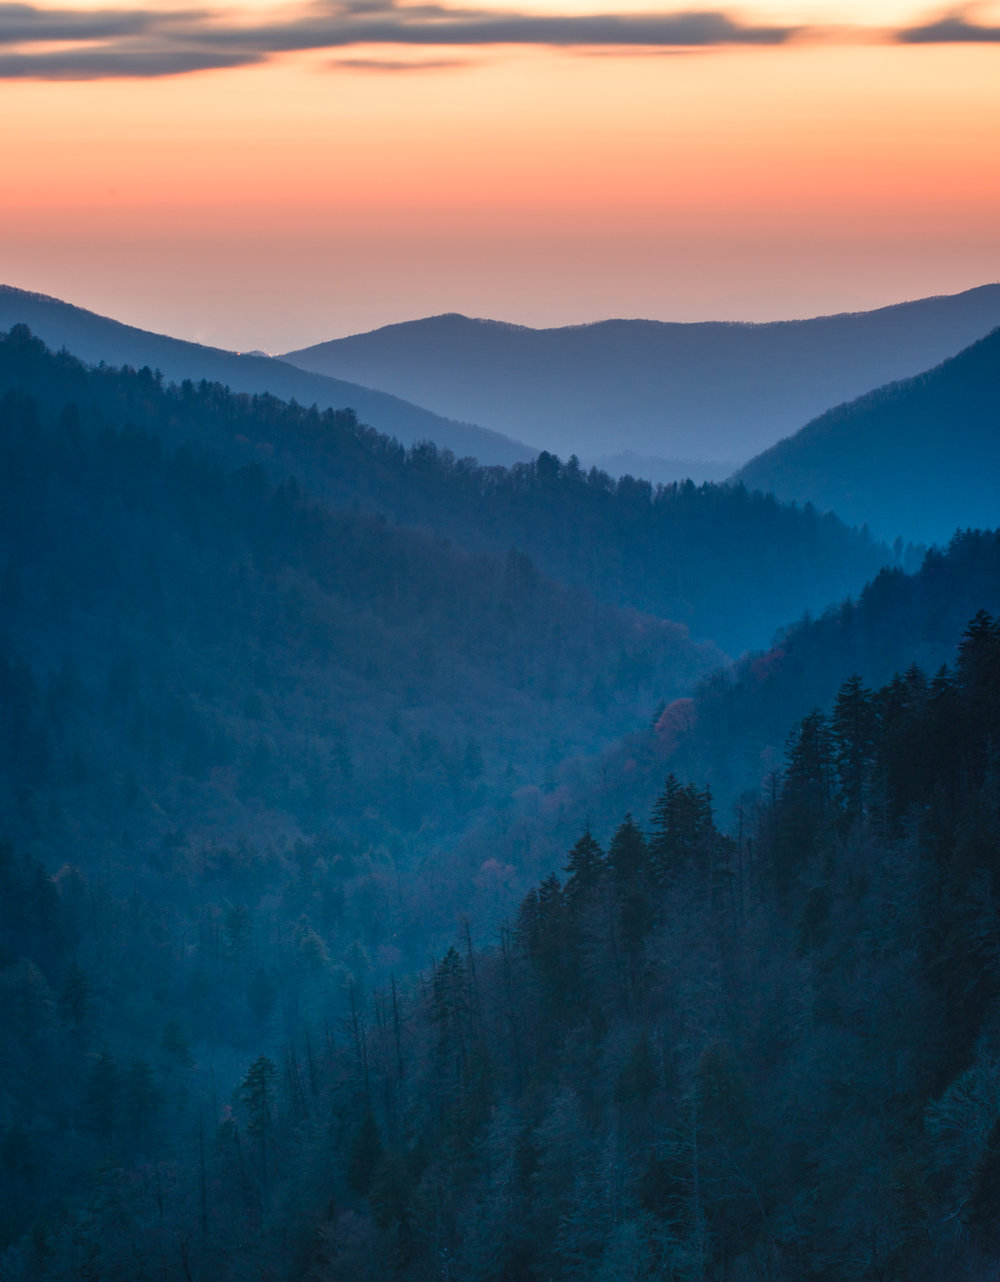 Morton Overlook after sunset